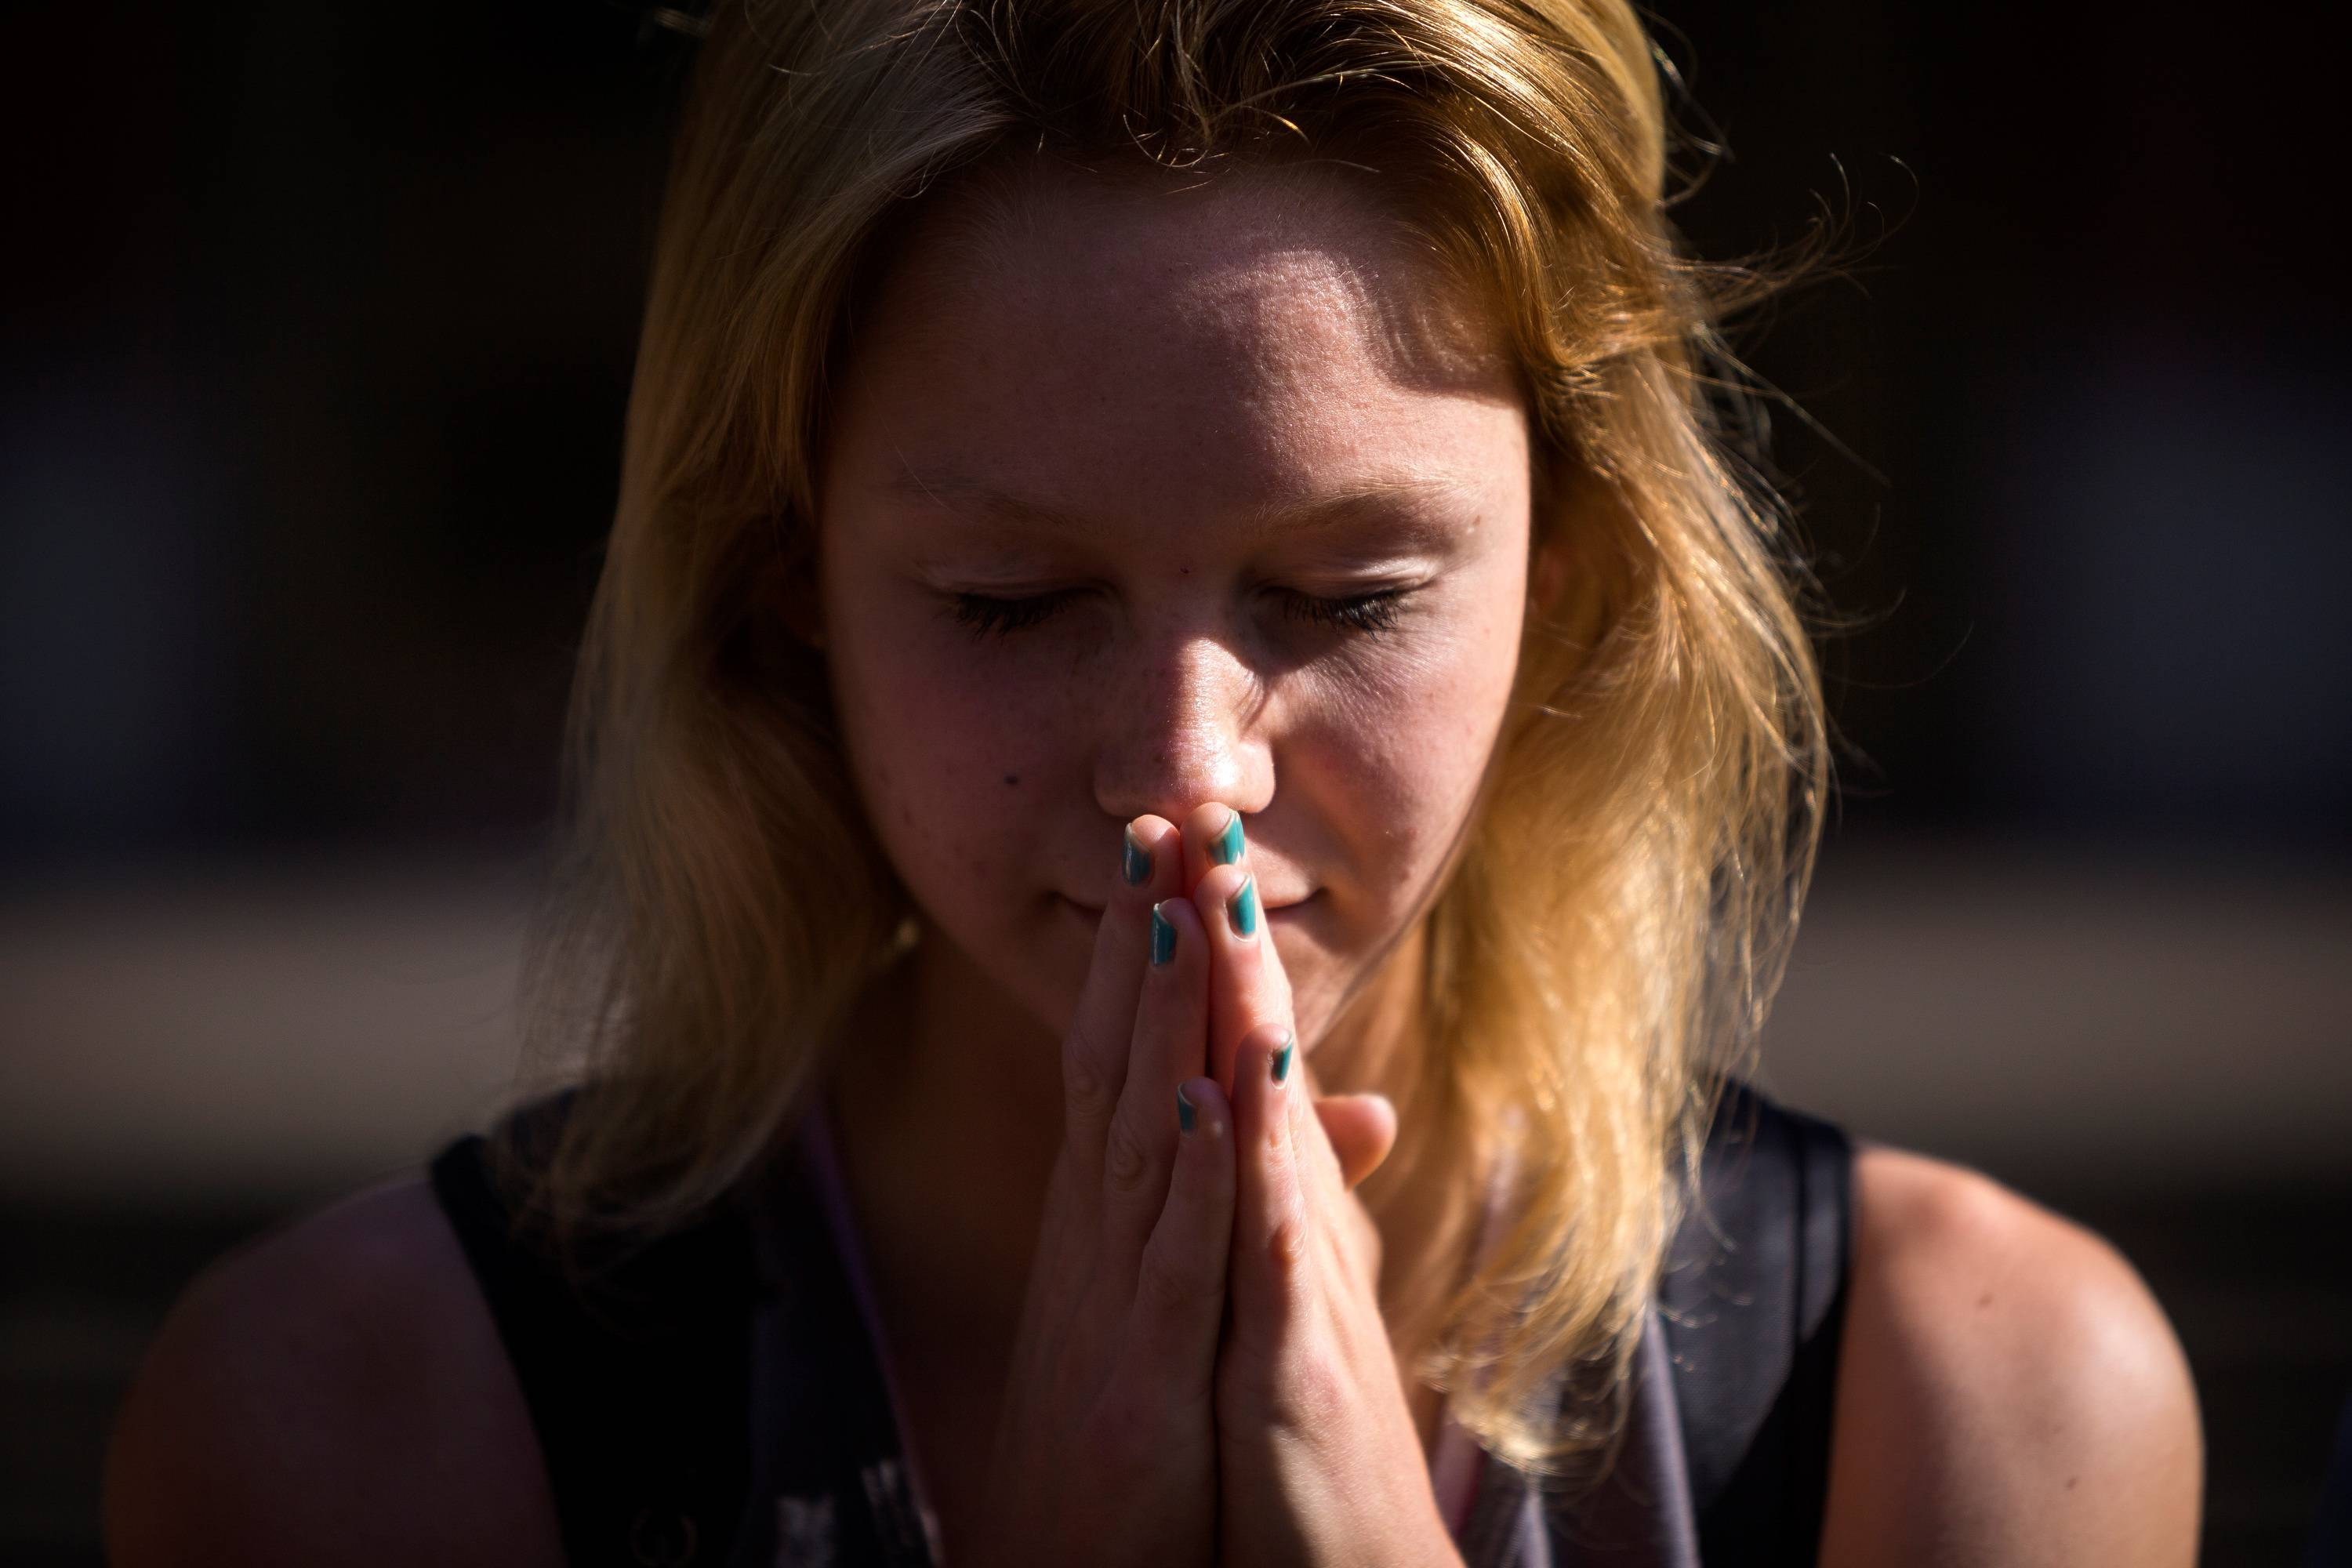 Following the lift of a lockdown in the wake of a school shooting, Seattle Pacific University students pray together Thursday, June 5, 2014, on the campus of Seattle Pacific University in Seattle, Wash.